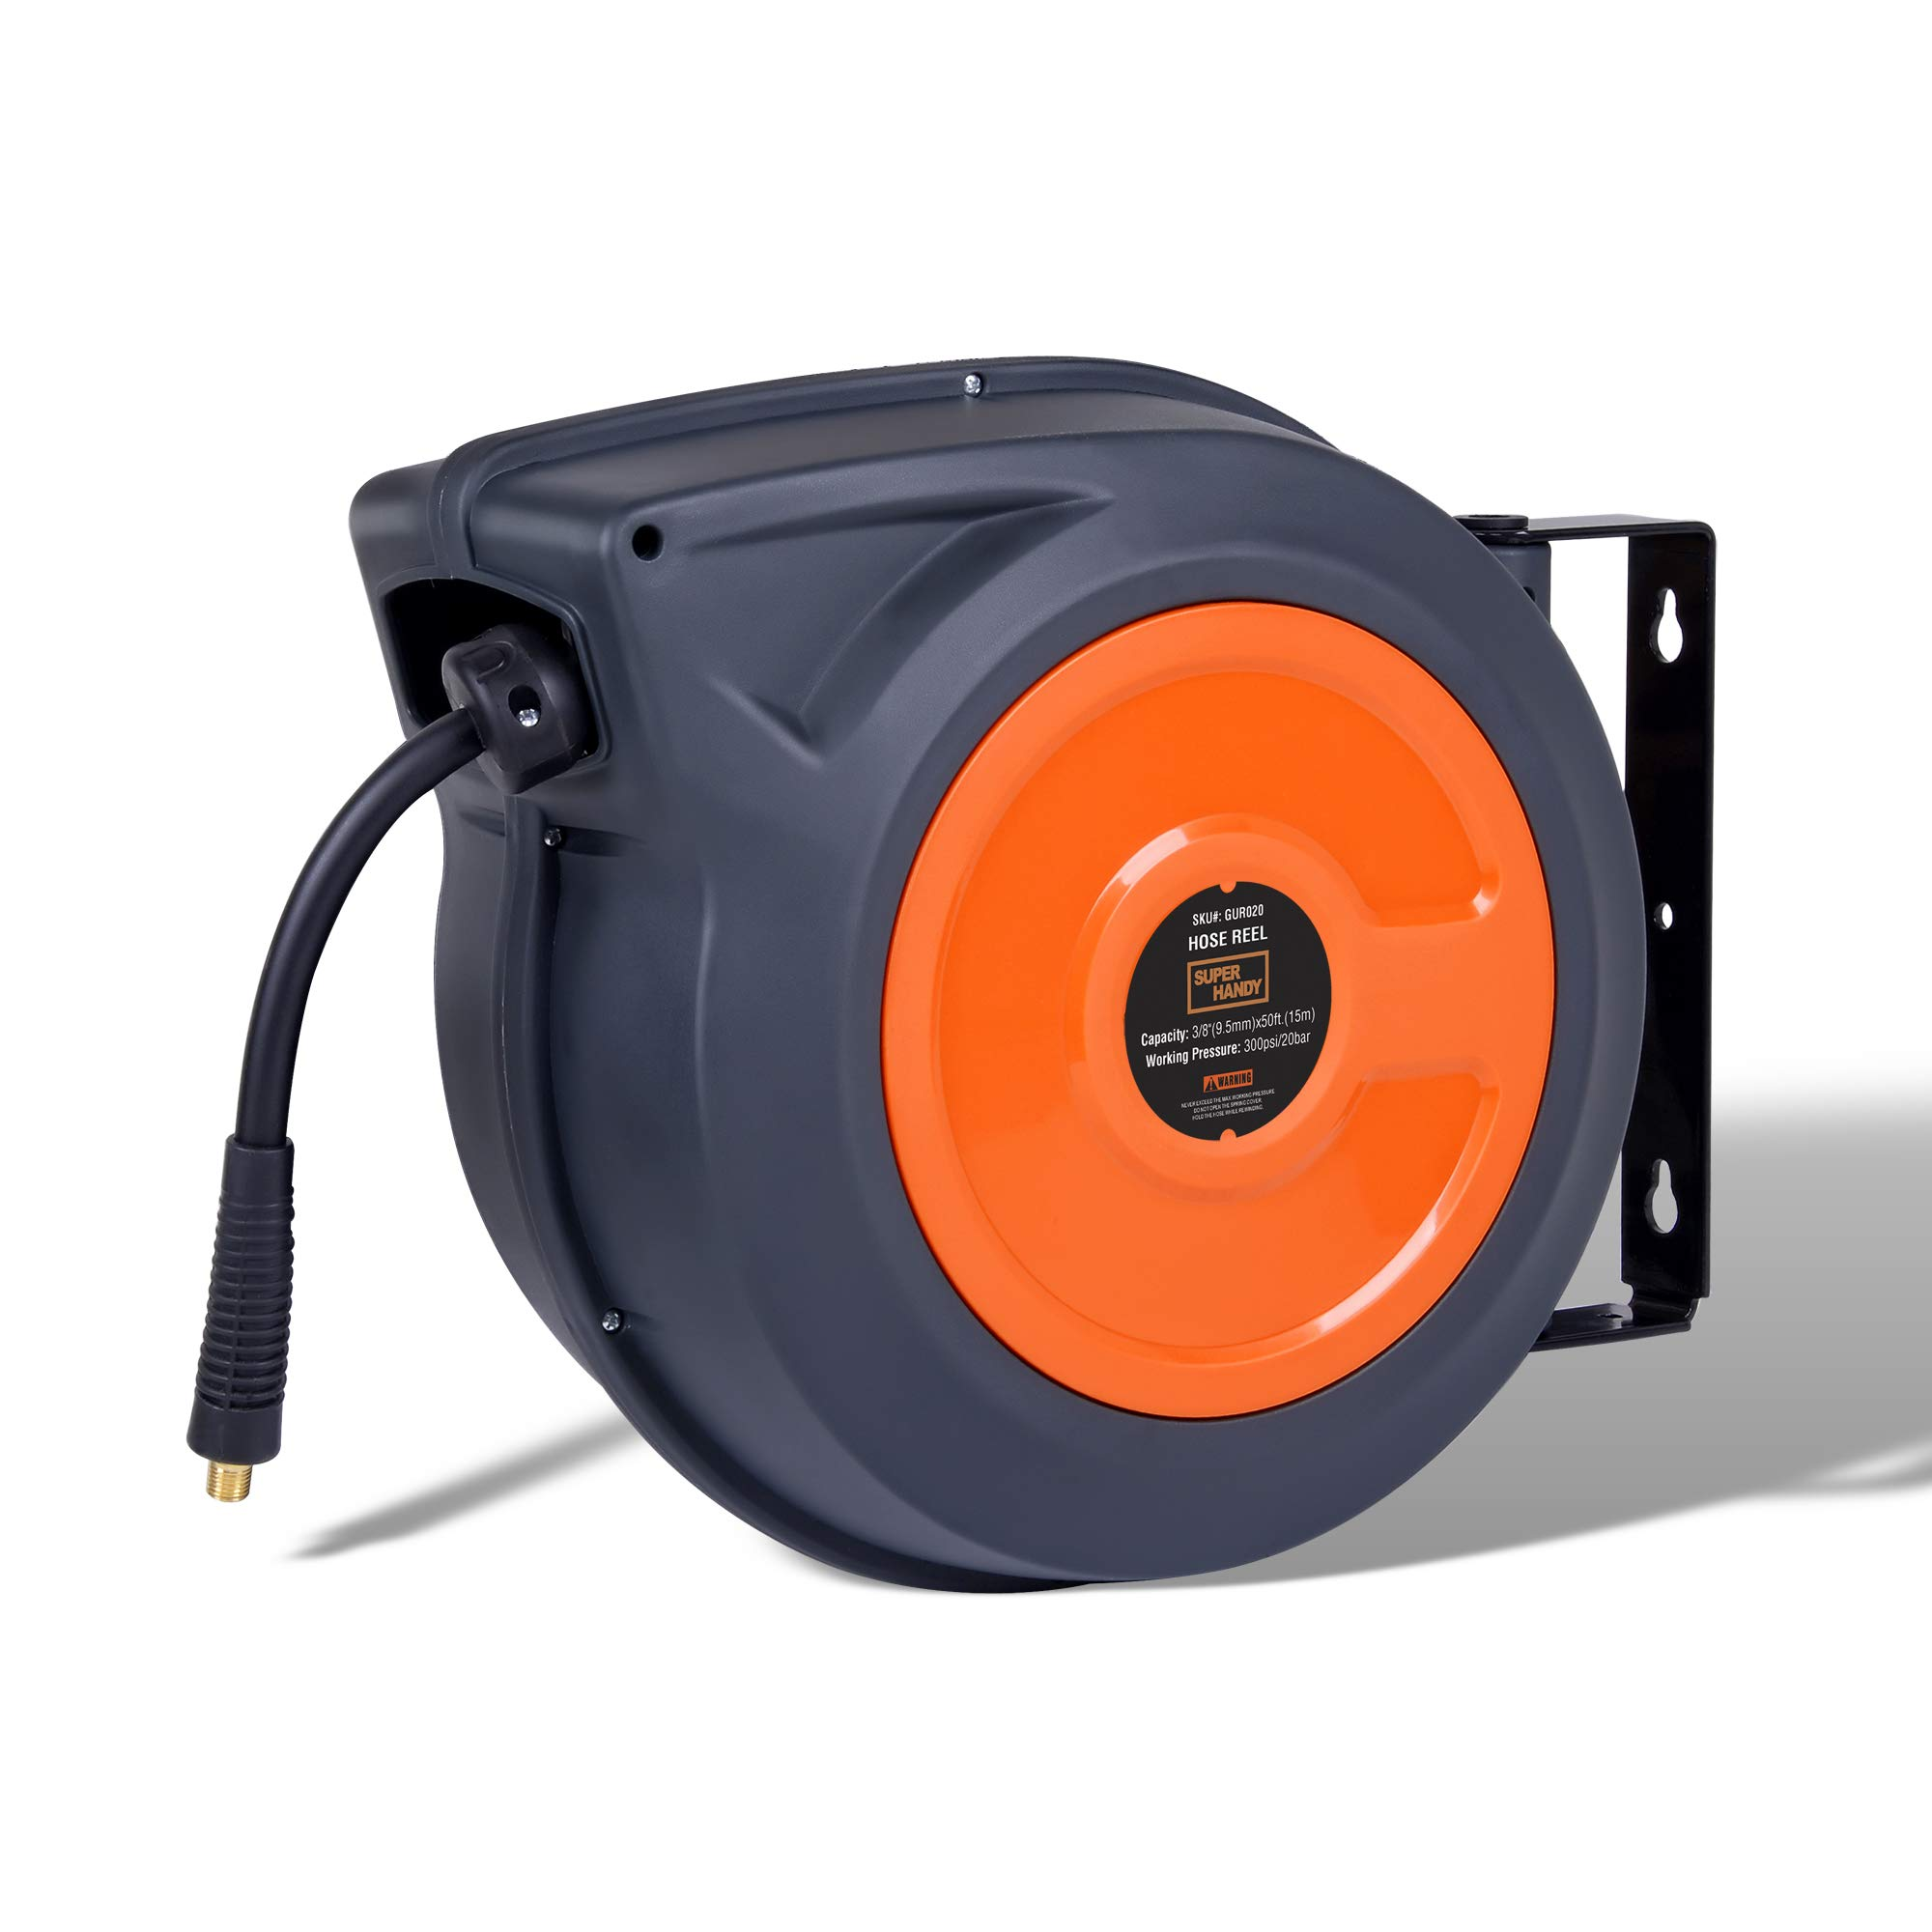 SuperHandy Air/Water Hose Reel Retractable 3/8'' x 50' Feet Long Industrial Premium Commercial Flex Hybrid Polymer Hose Spring Driven Polypropylene Heavy Duty with Lead in Hose & PVC Handle